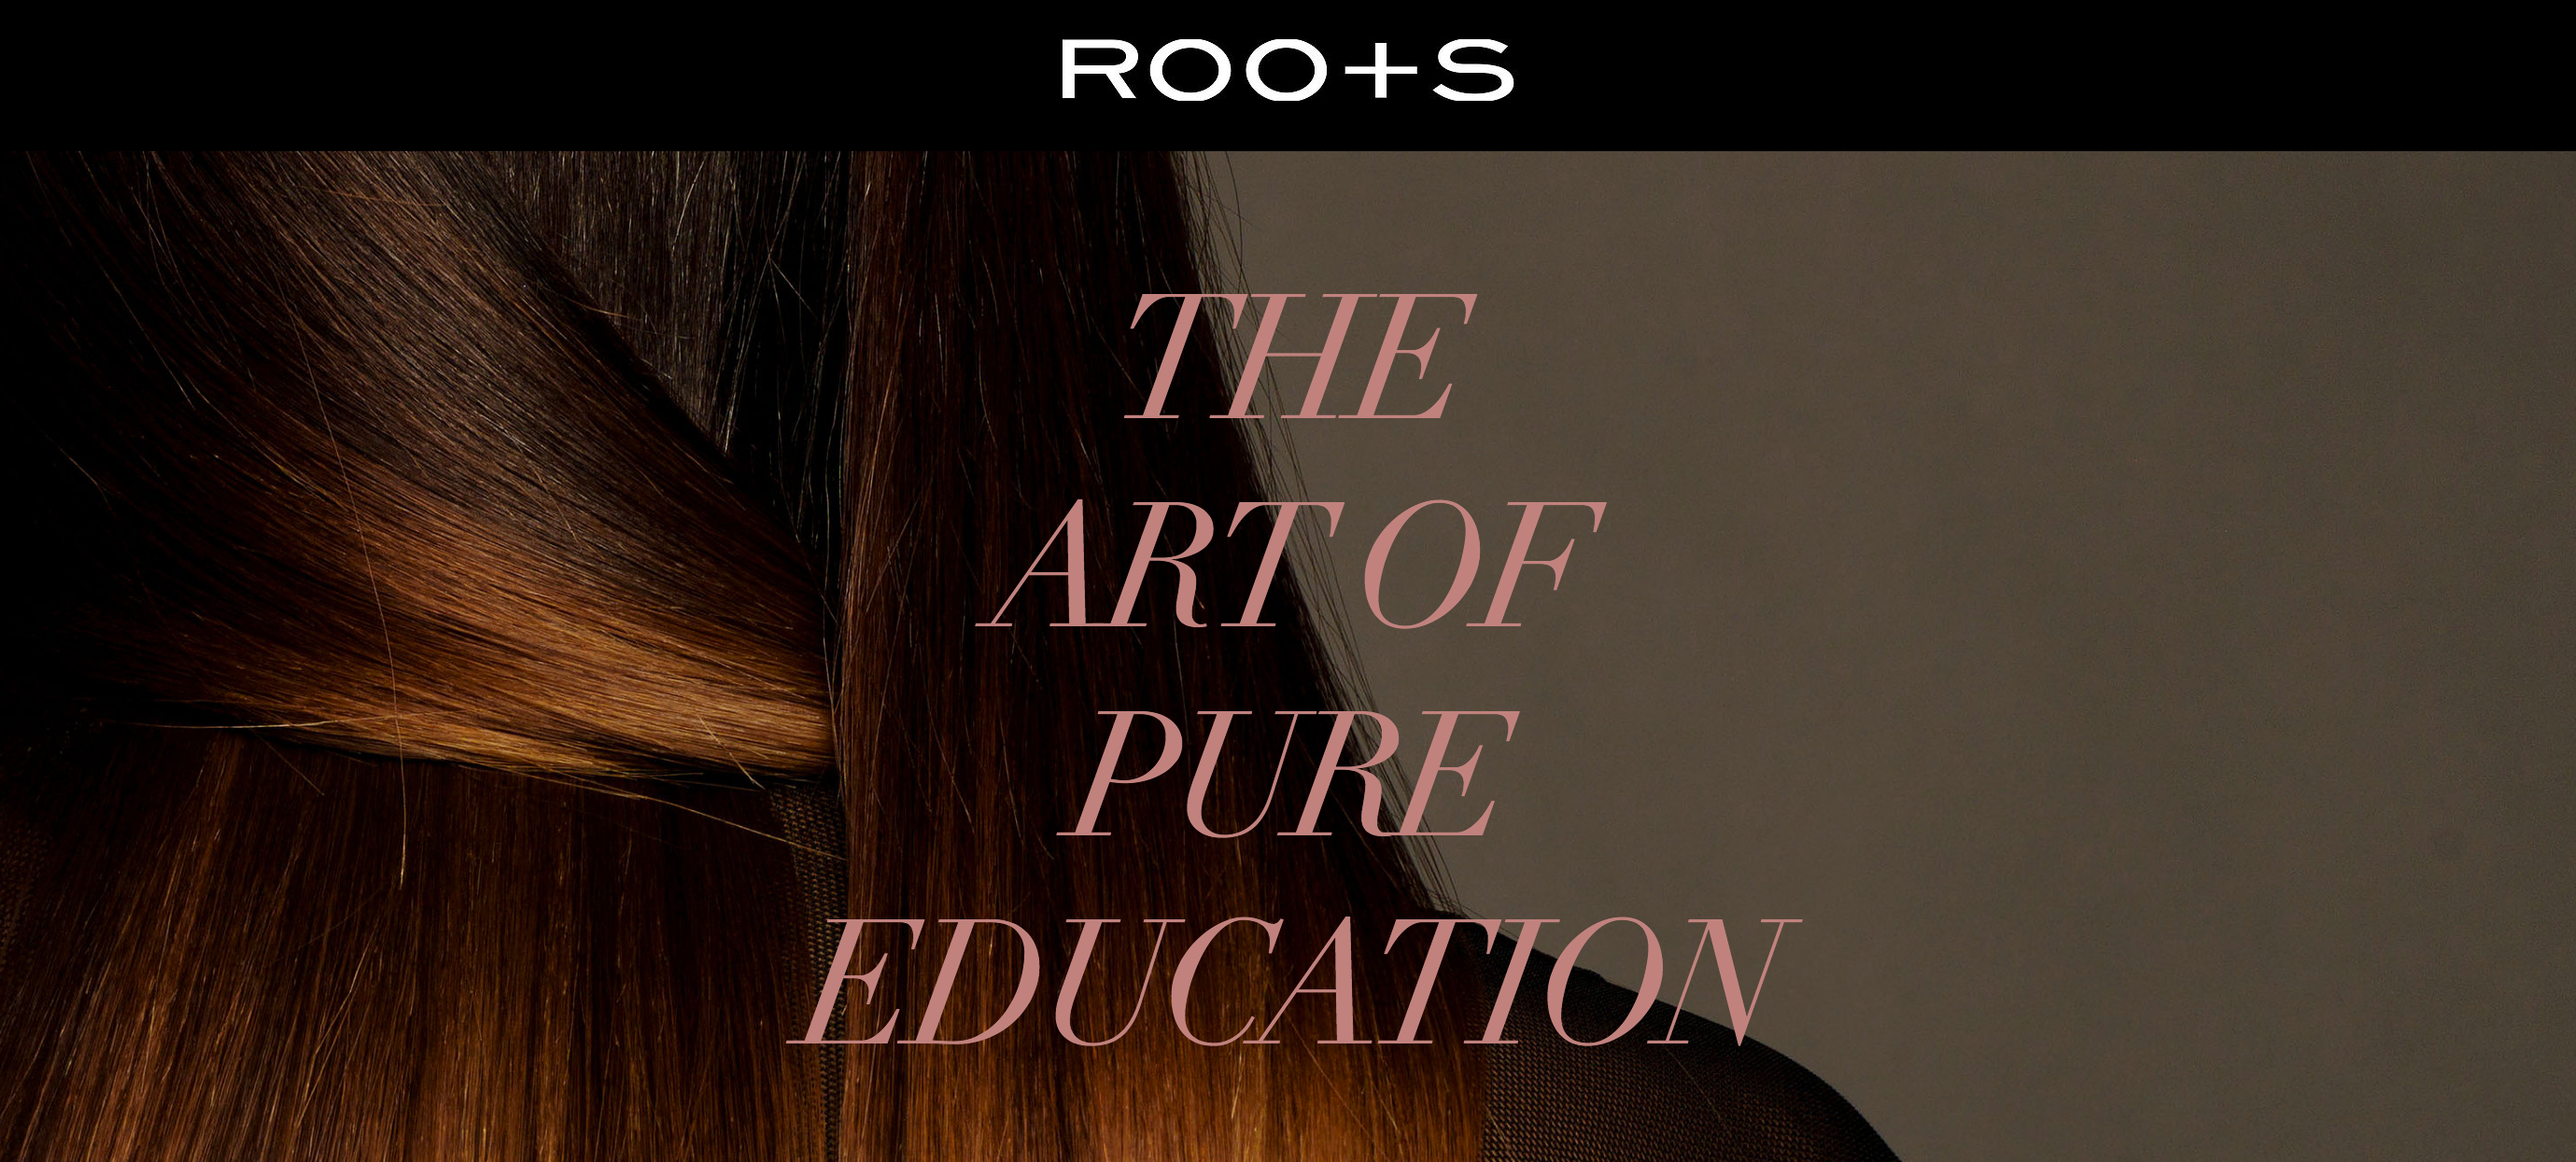 ROOTS salon education